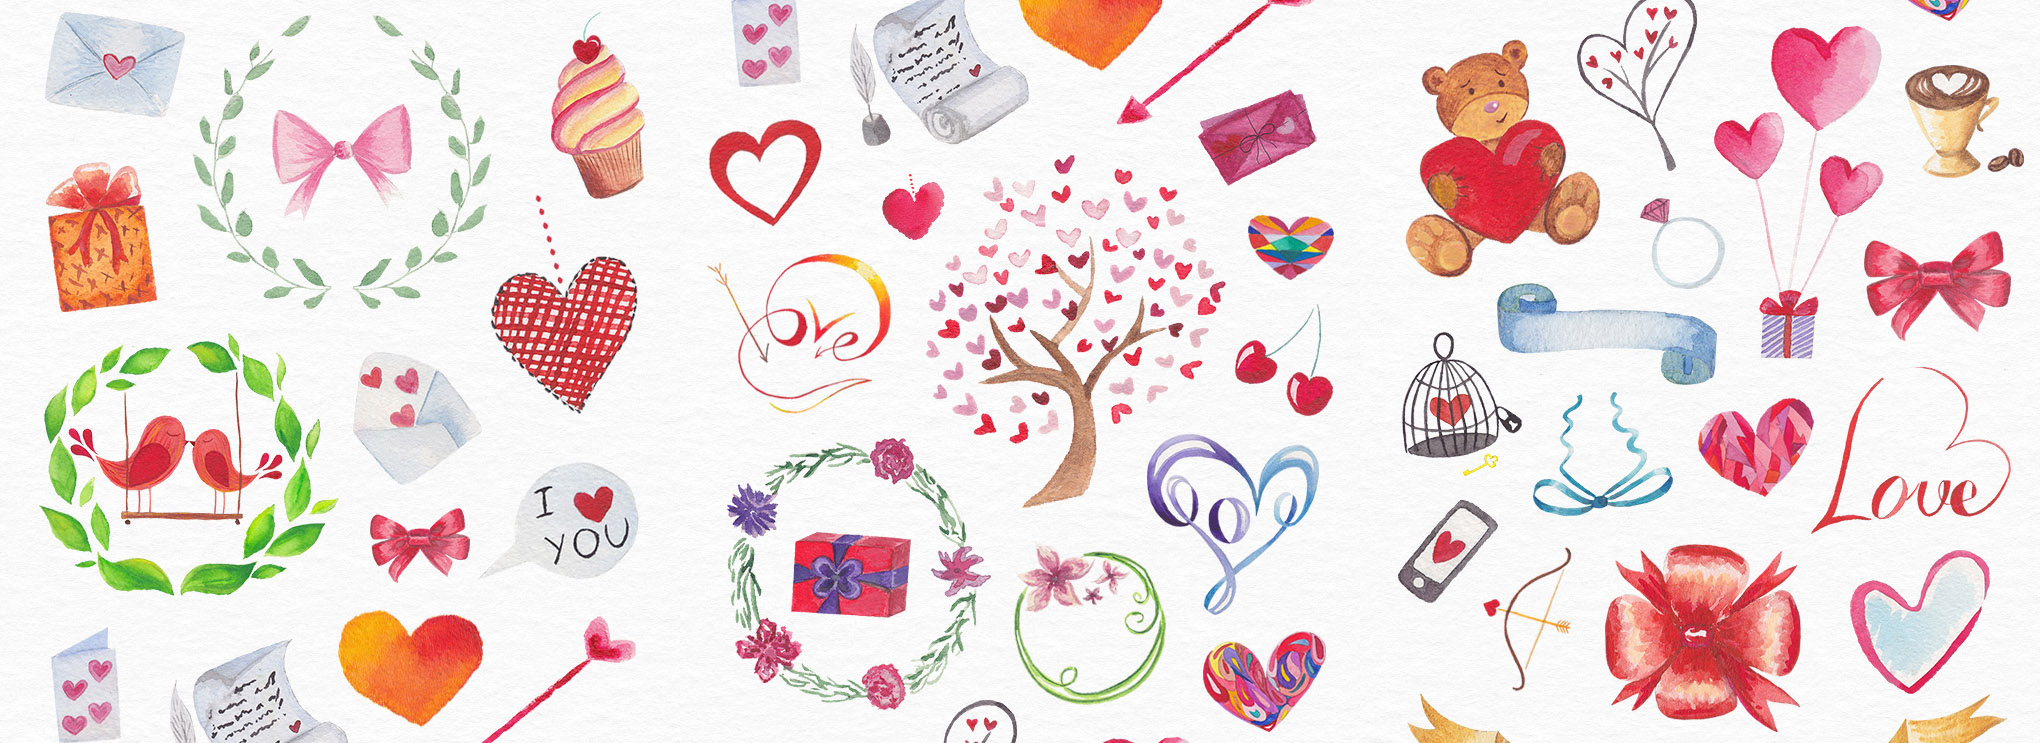 Free Watercolors: Backgrounds, Patterns, Objects, Logos | GraphicMama